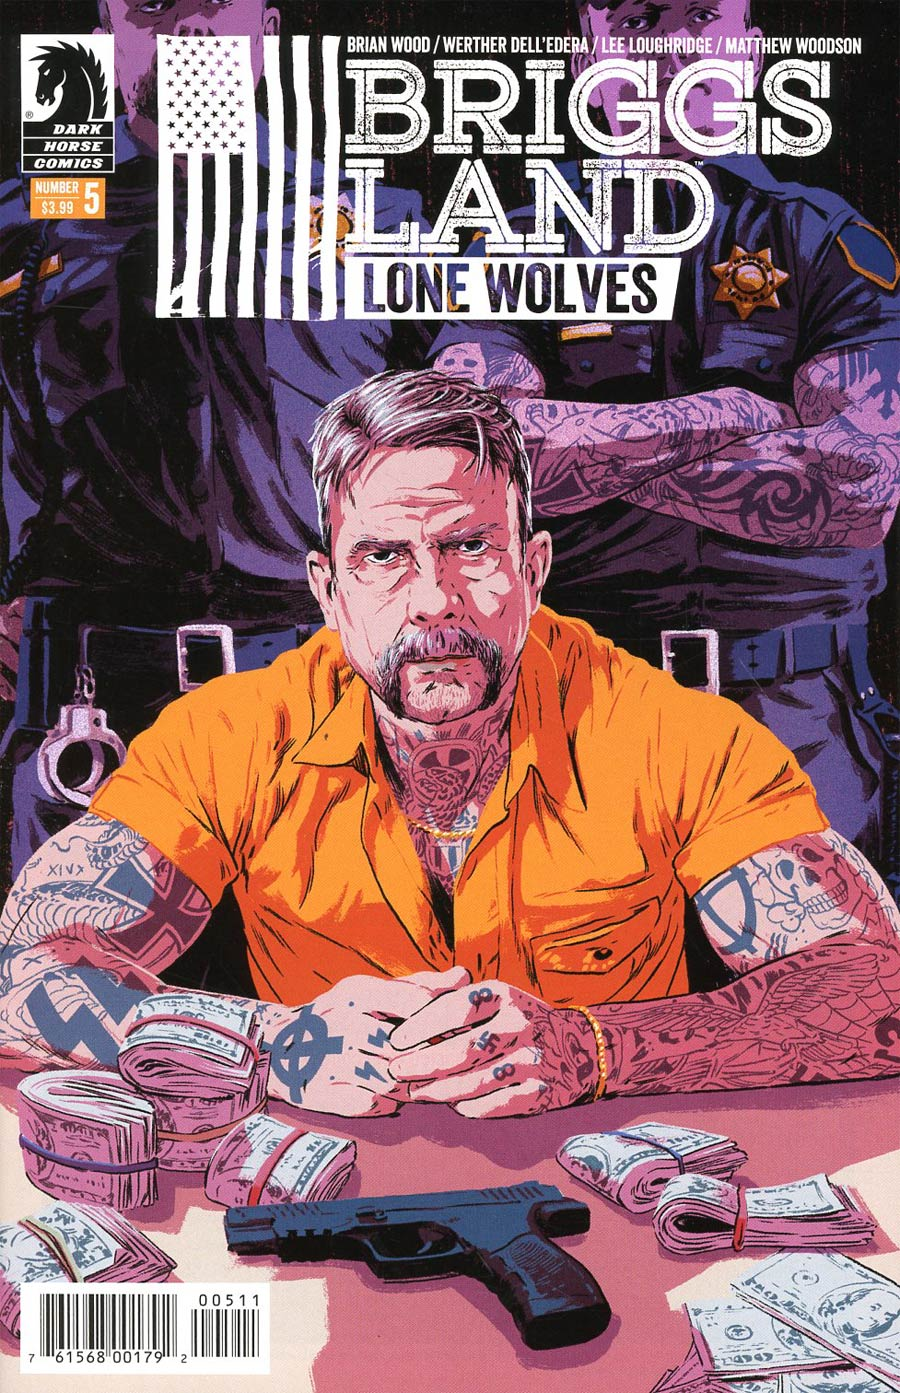 Briggs Land Lone Wolves #5 Cover A Regular Matthew Woodson Cover